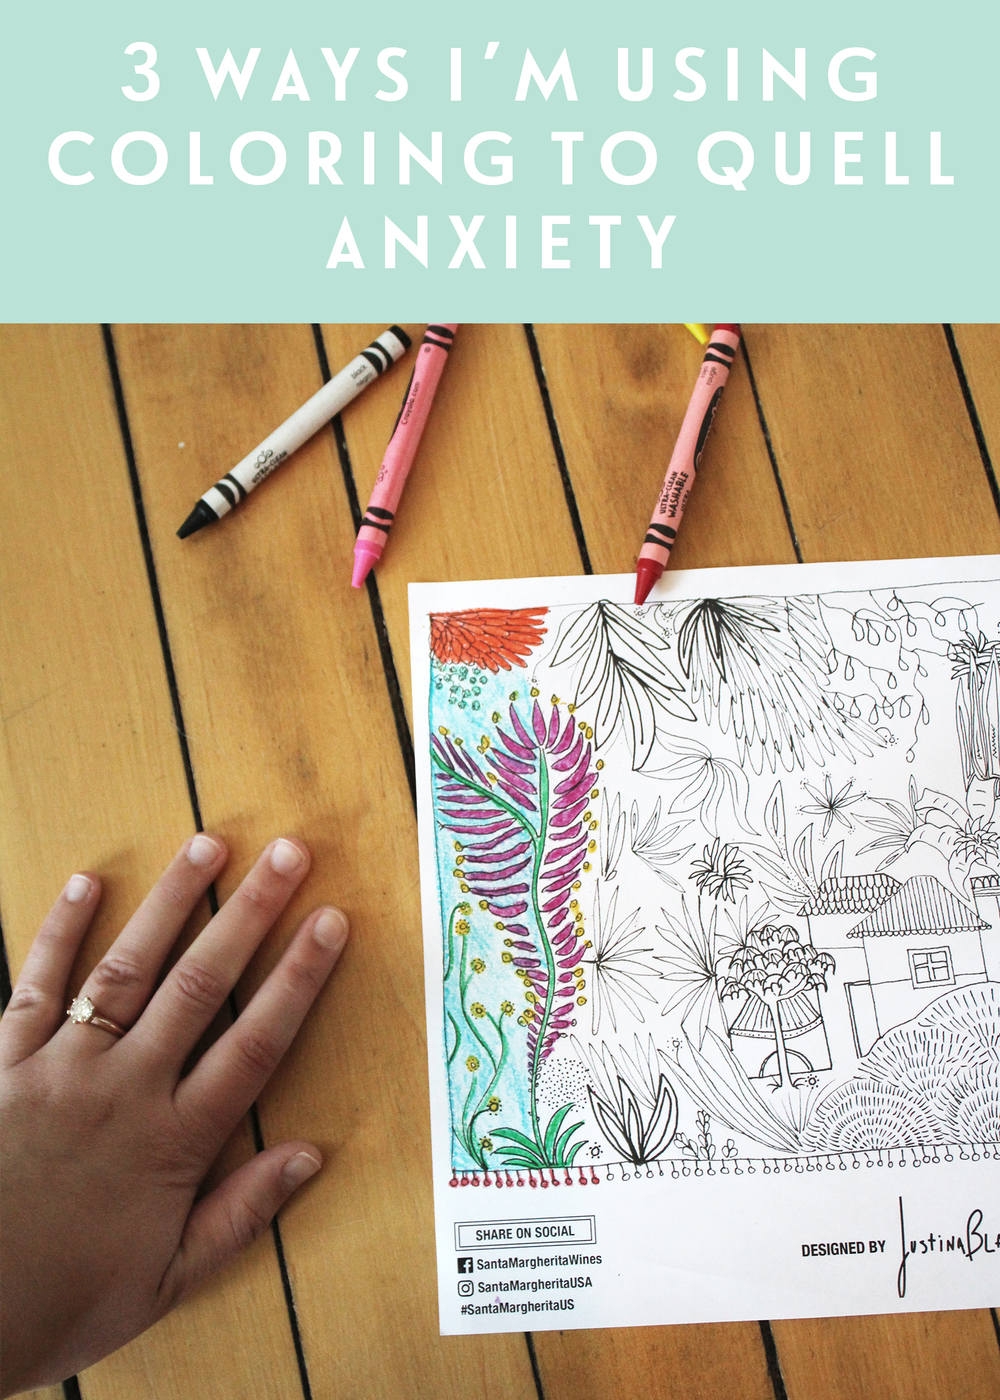 3 Ways I'm Using Coloring to Quell Anxiety